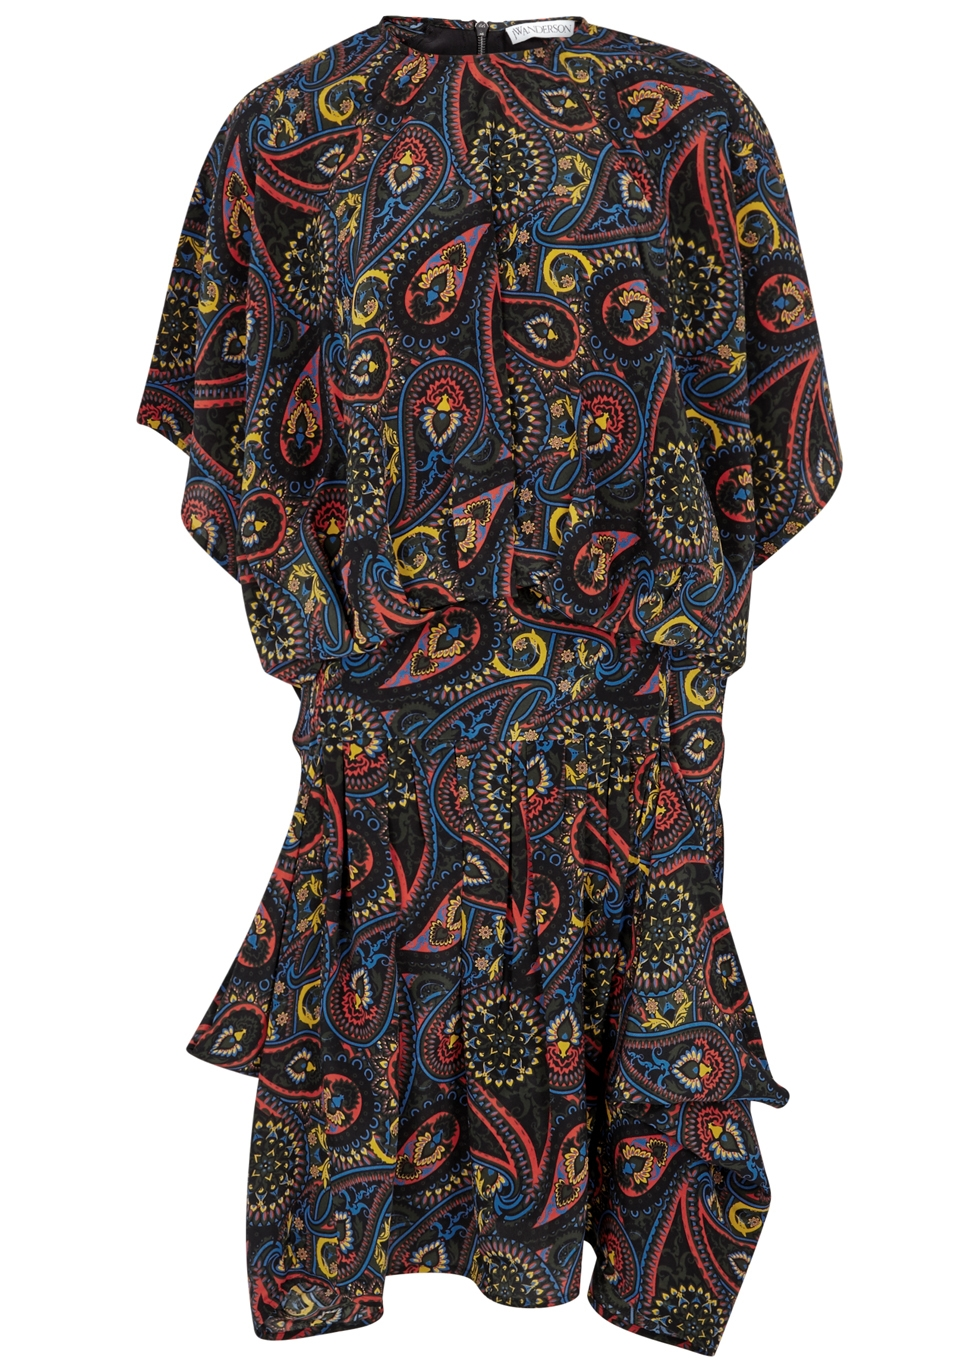 J.W.ANDERSON PRINTED SILK CREPE DE CHINE DRESS